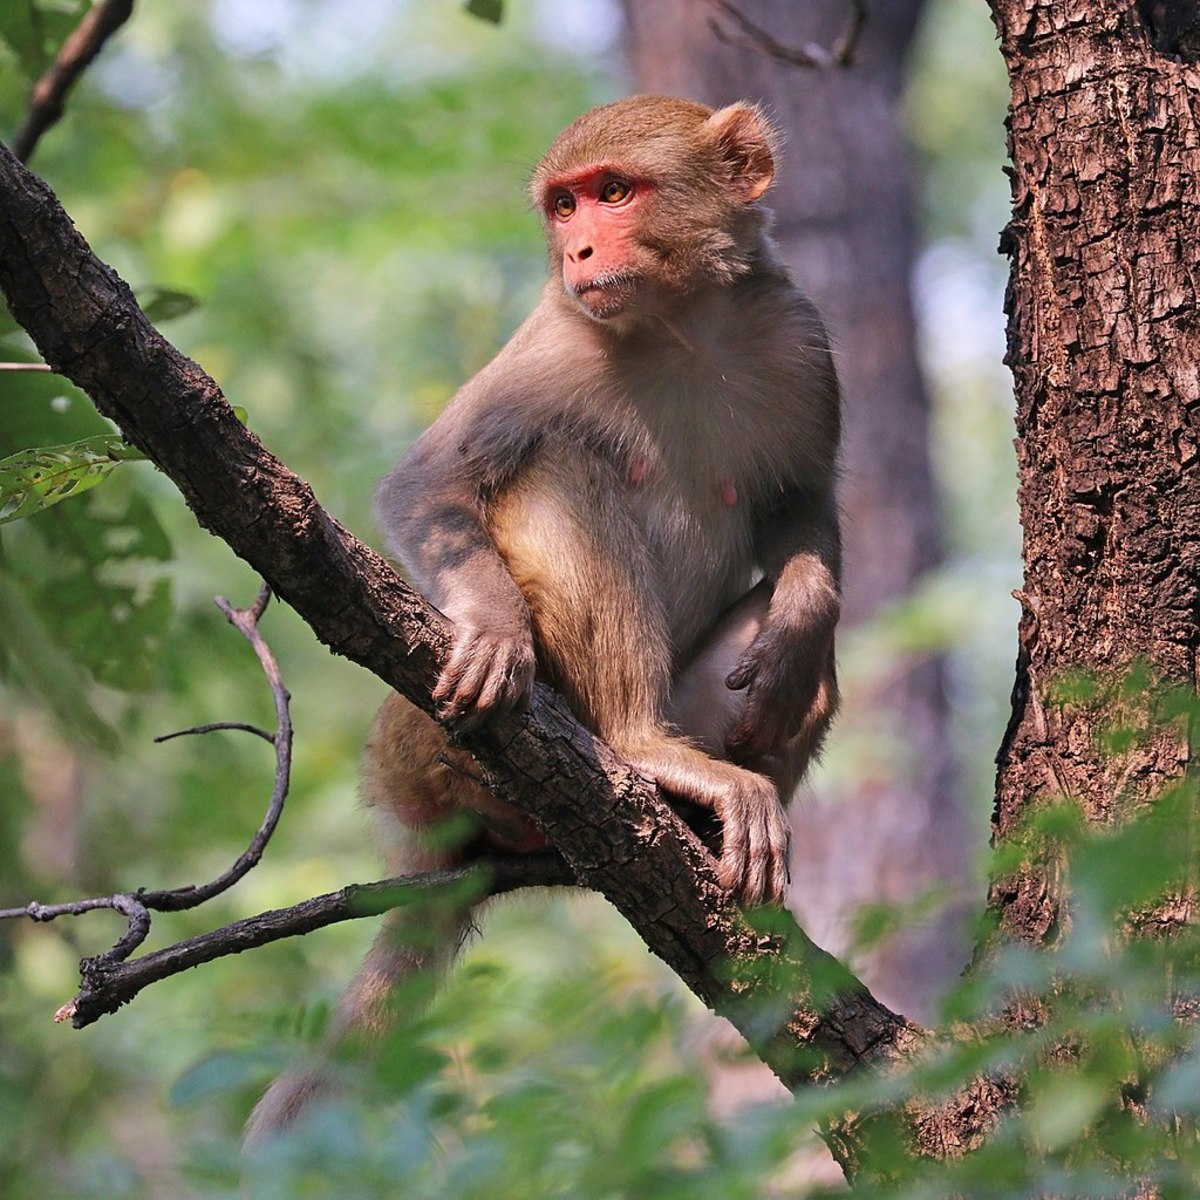 Macaque monkeys are often used in medical experiments because their nervous system closely resembles that of humans.